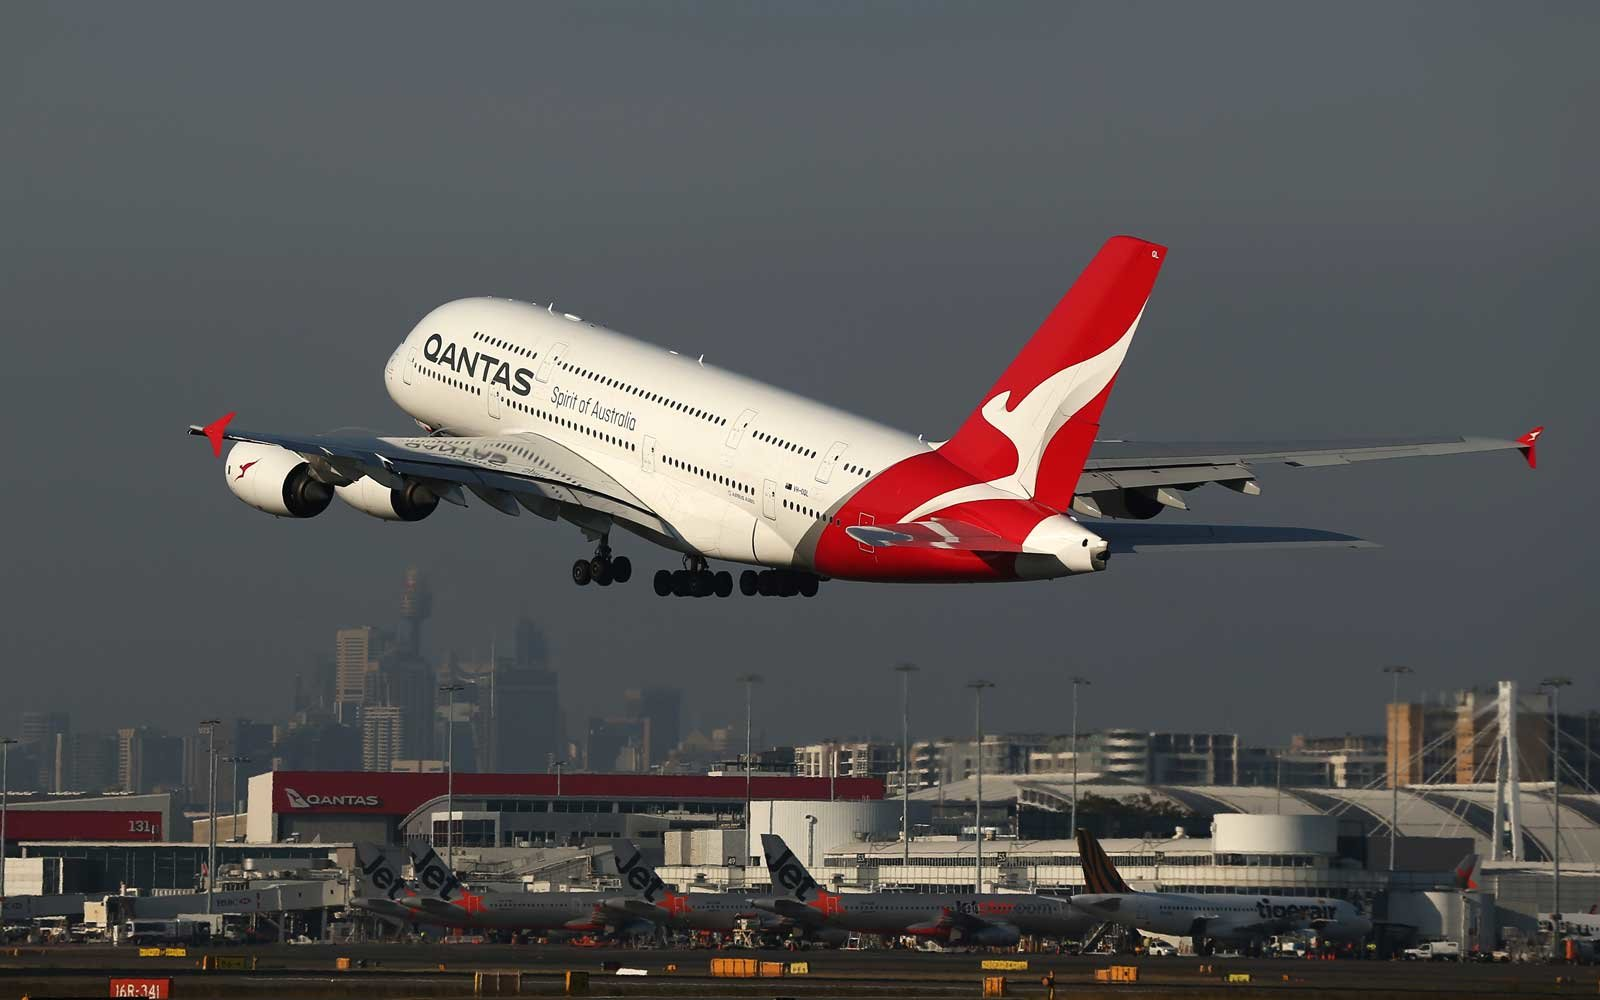 Qantas Australian Airlines Non-Stop From London to Sydney